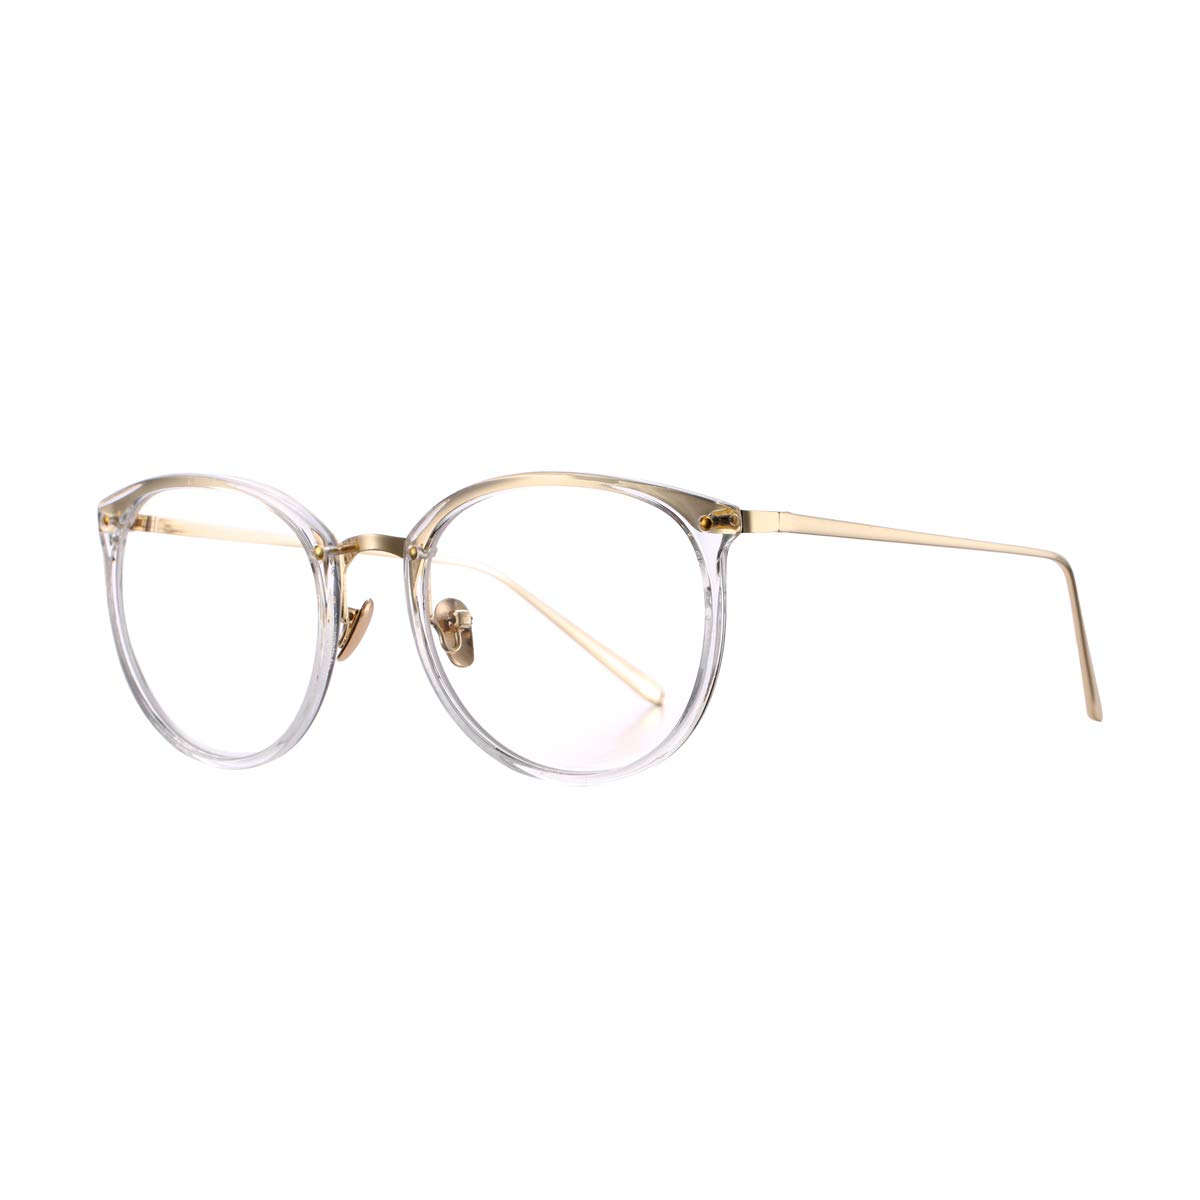 aaace045168 Amazon.com  AZORB Womens Vitage Round Eyeglasses Non-Prescription Glasses  Frame (Transparent)  Shoes